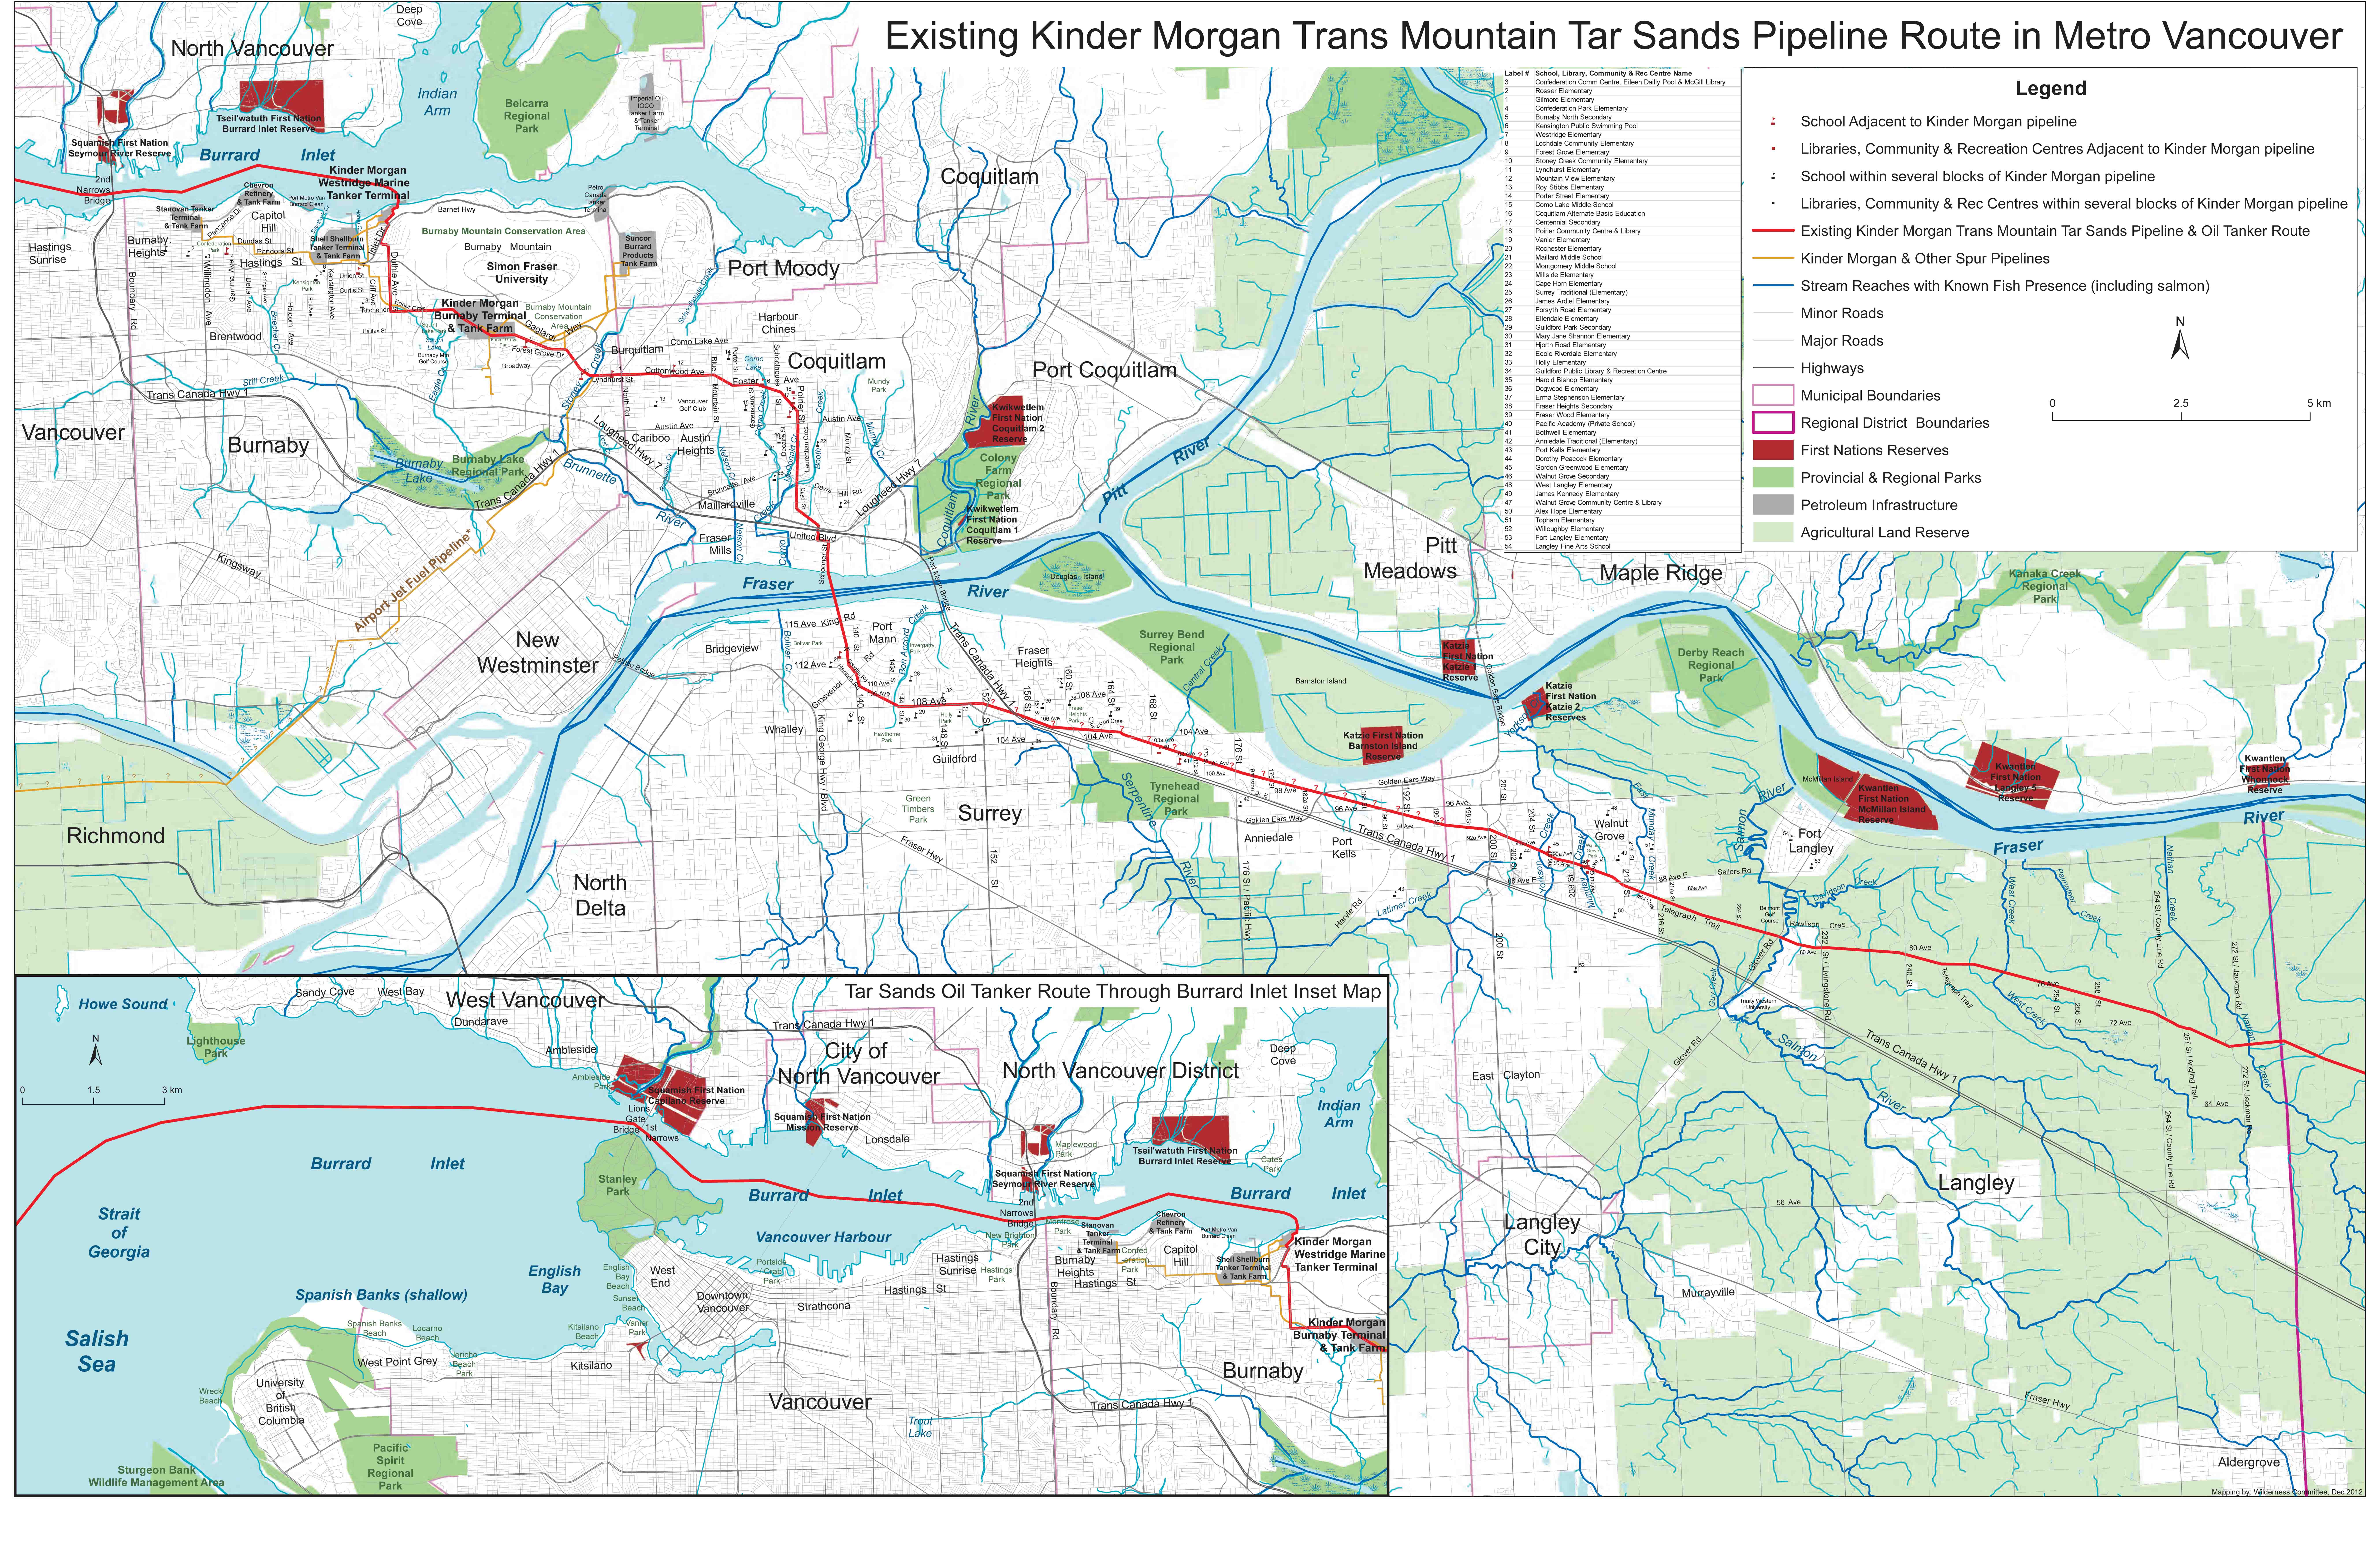 Kinder Morgan Pipeline Route Metro Vancouver